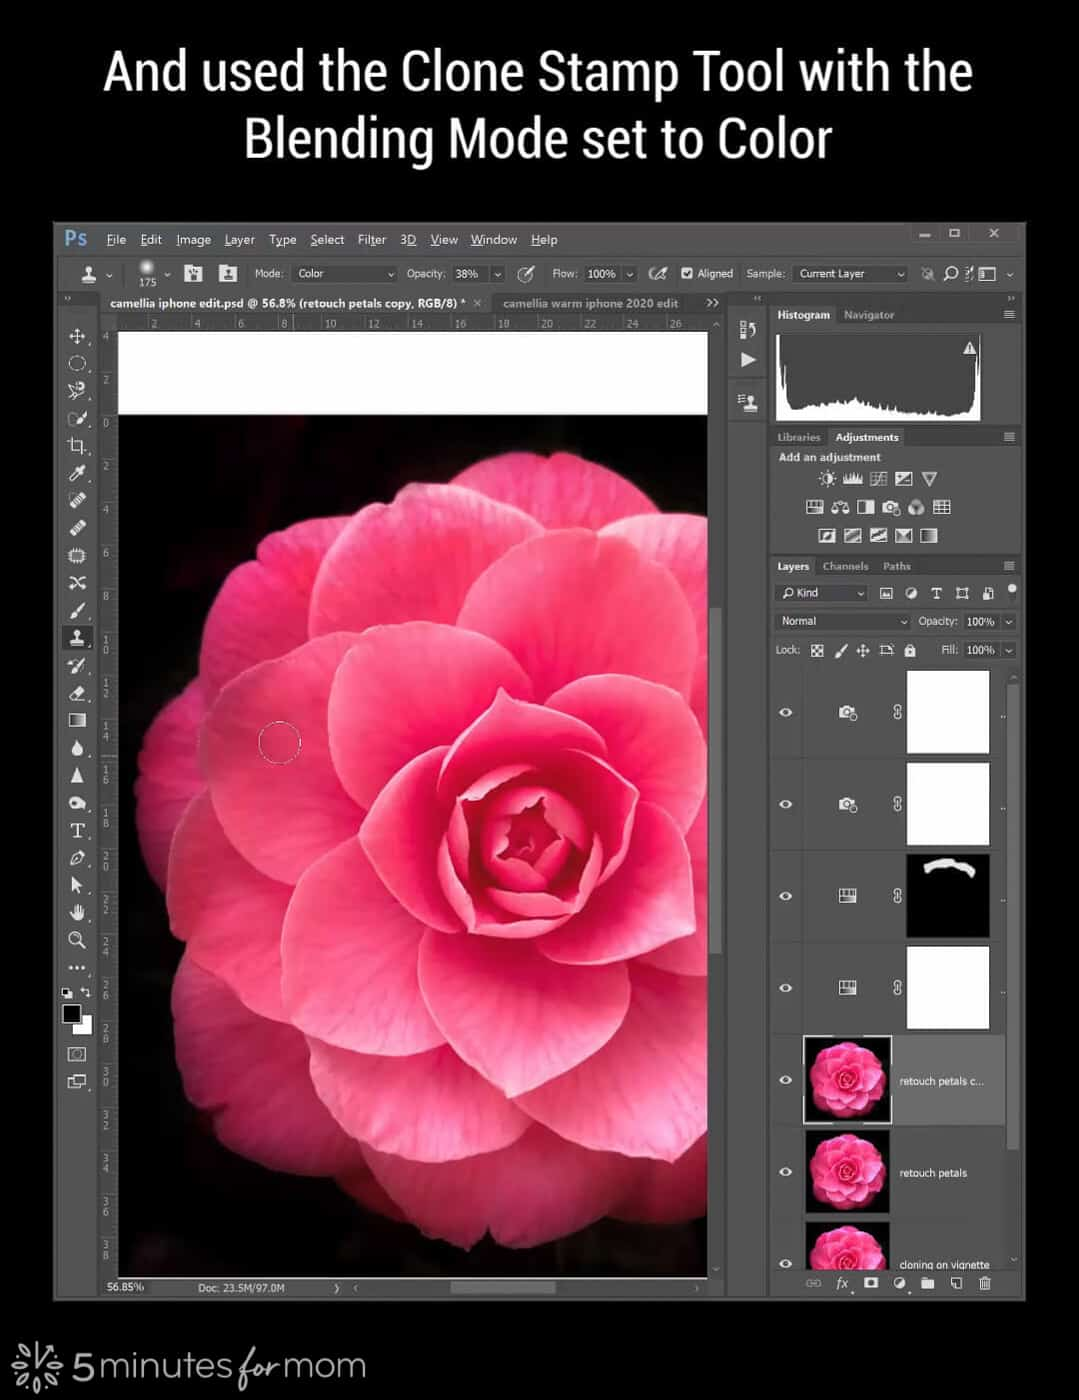 clone stamp tool with blending mode set to color